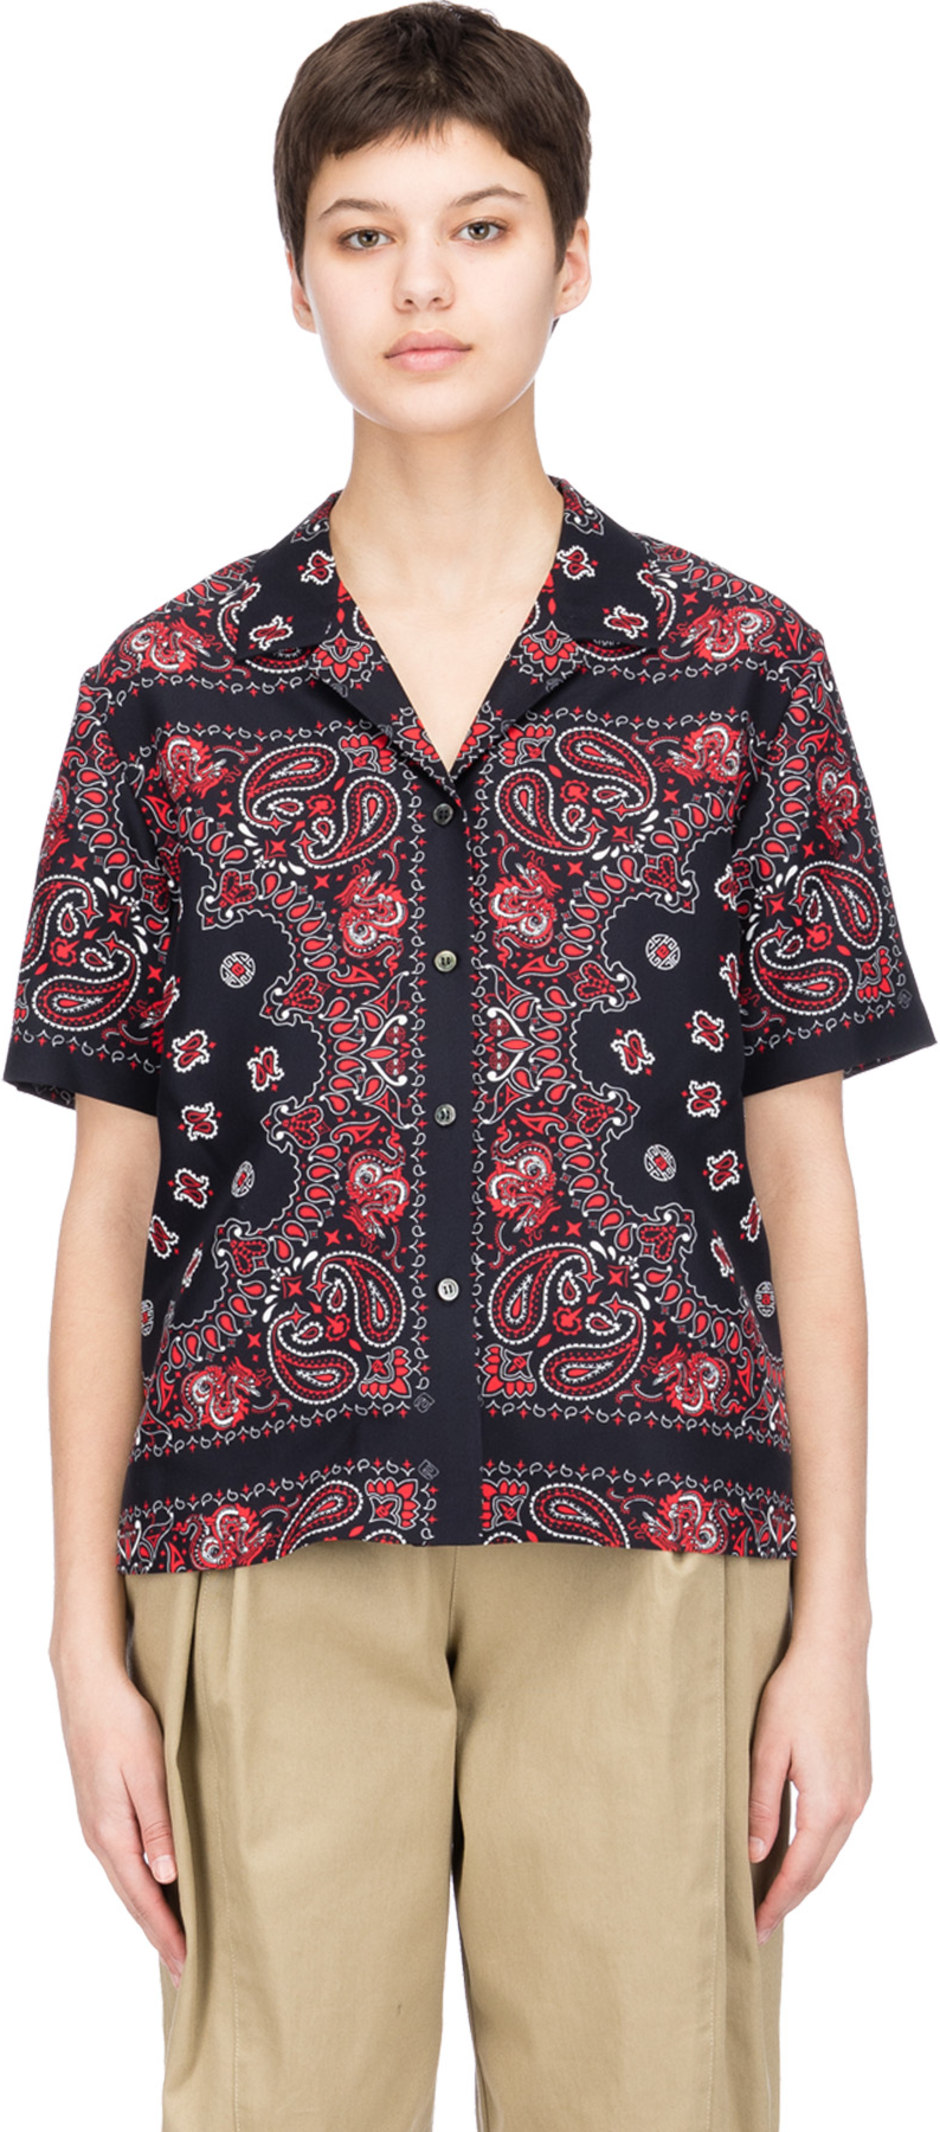 32047e1e56a6a Alexander Wang  Bandana Print Hawaiian Shirt - Black Red